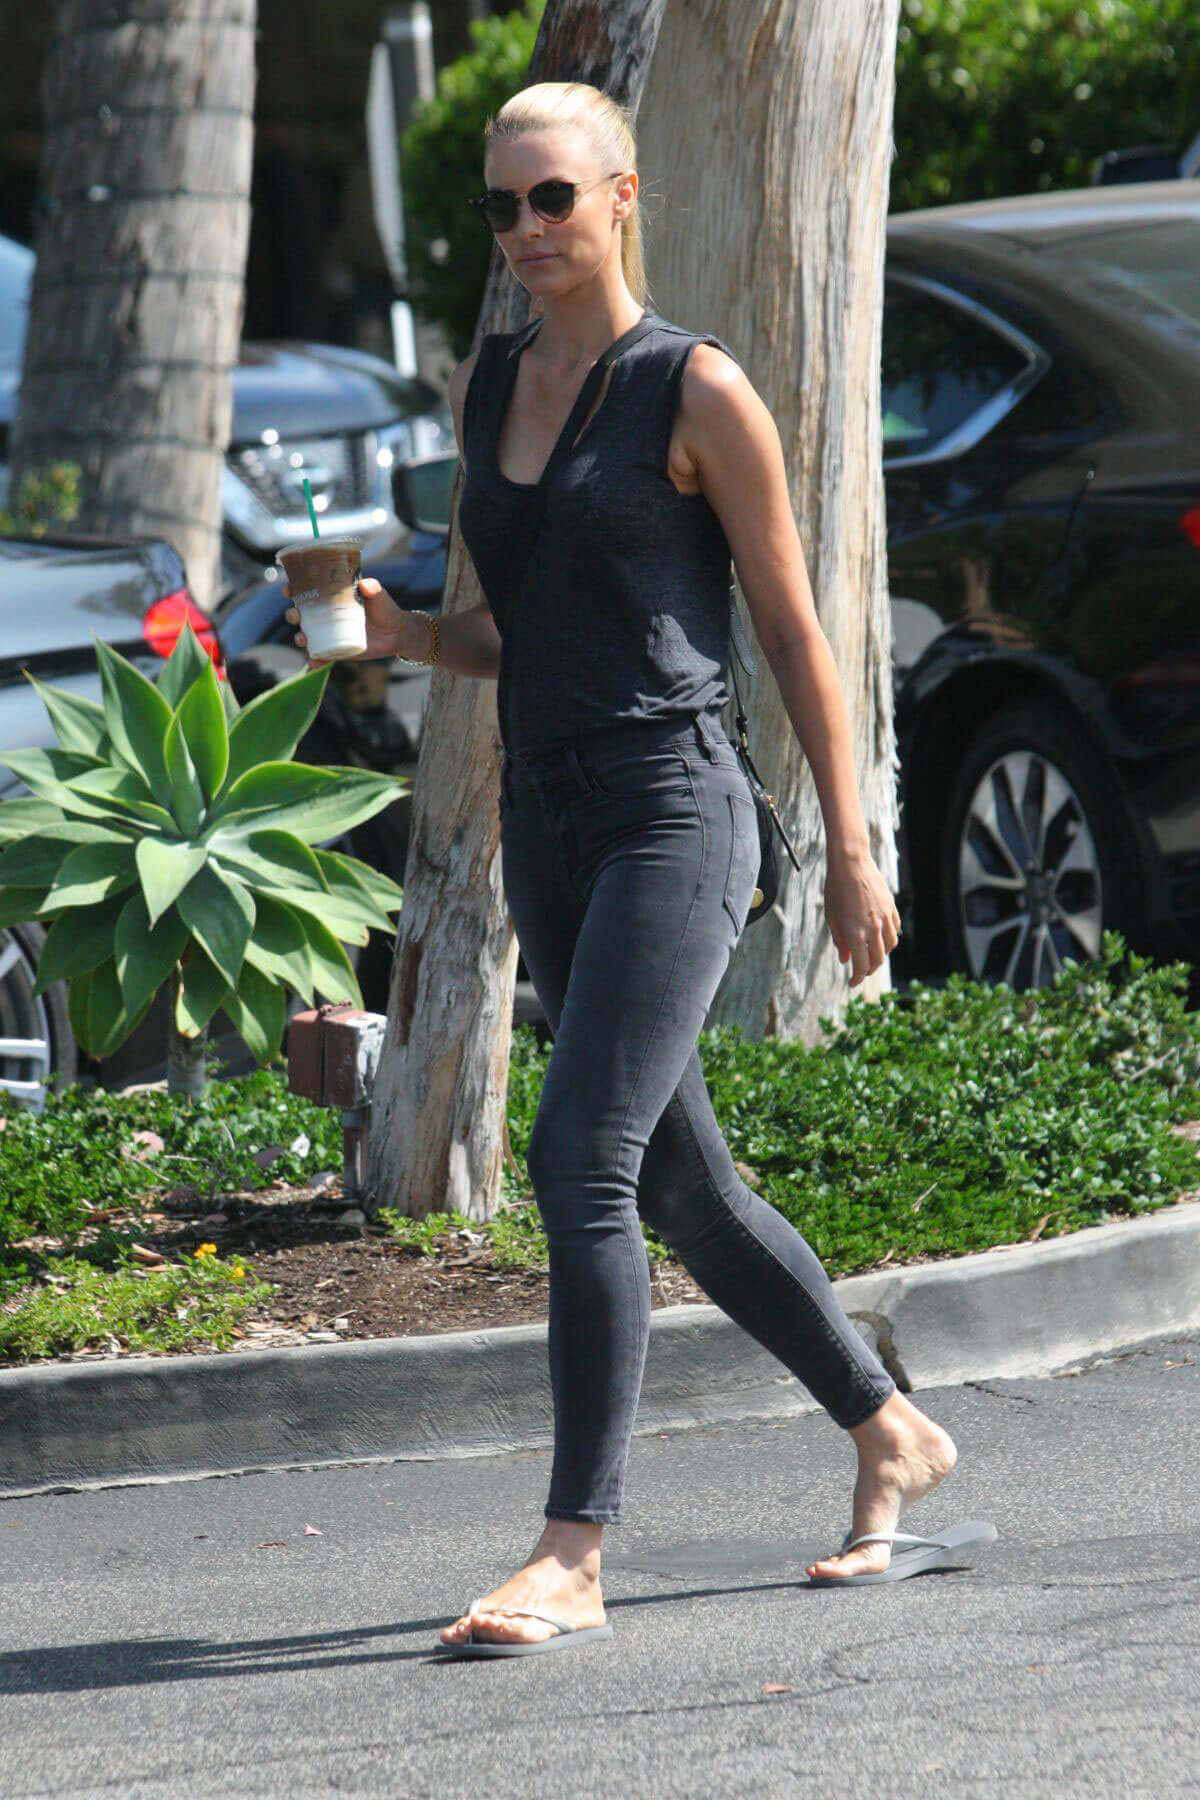 Paige butcher in spandex beverly hills new images